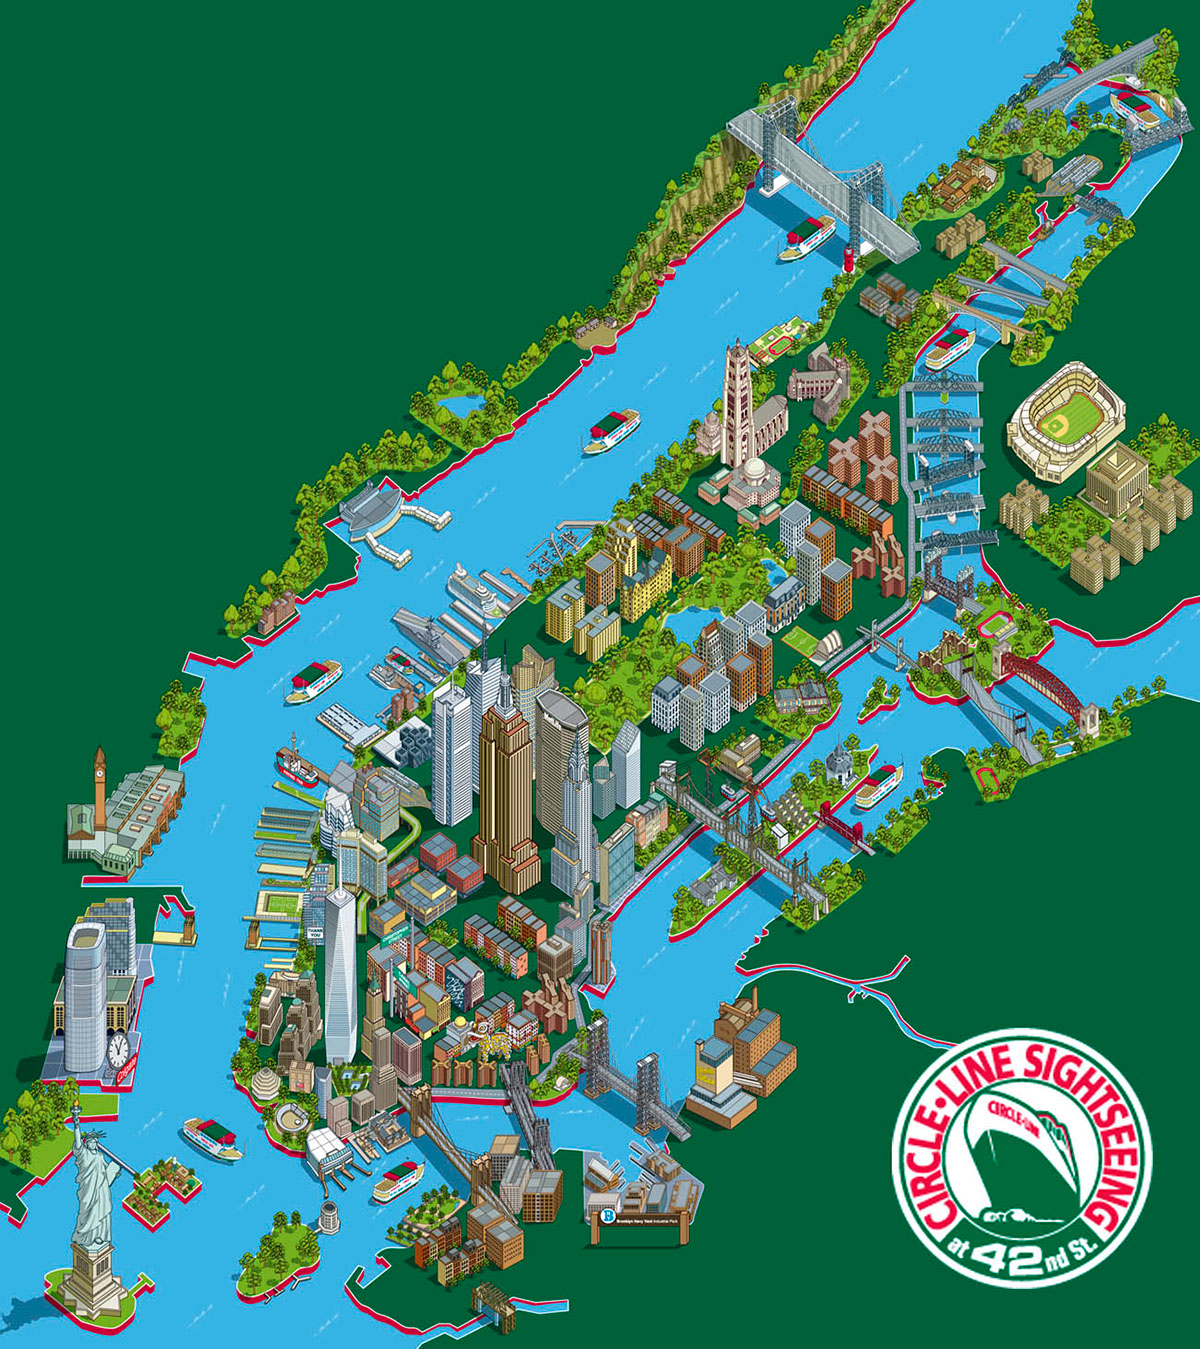 rod hunt illustrated the  new york sights map for circle line sightseeingcruises the print version is available in tourist information centres hotels . circle line  new york sights illustrated map on behance